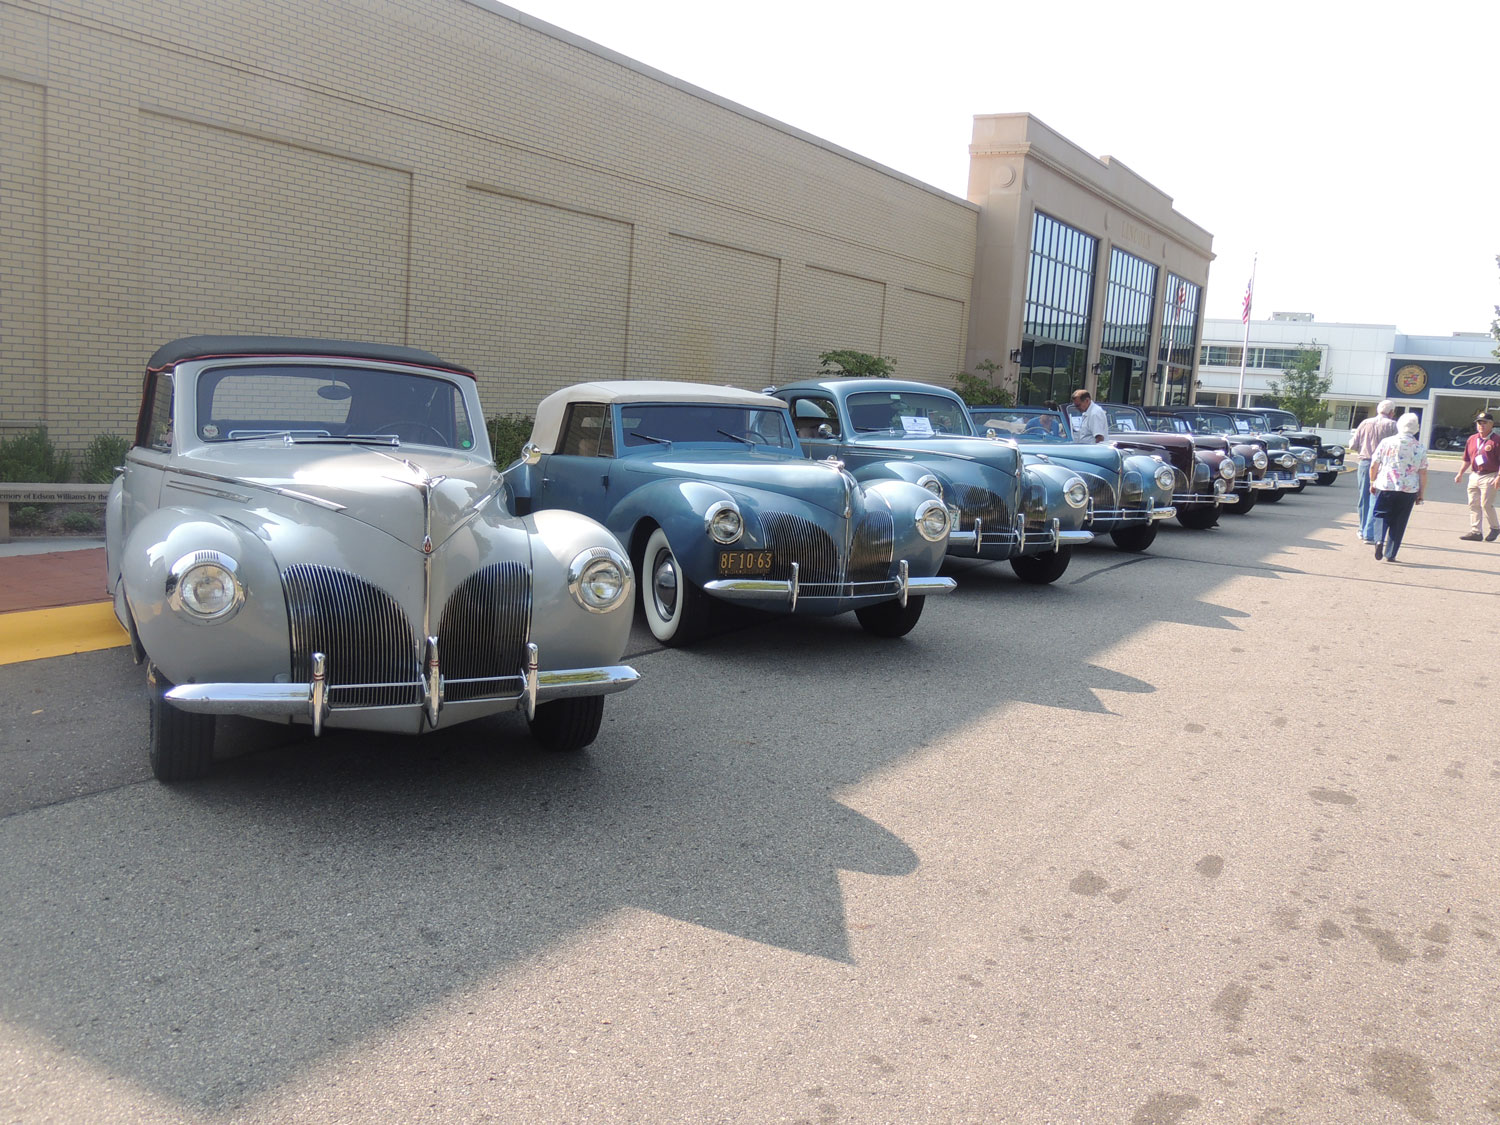 A row of Lincoln-Zephyrs in front of the Lincoln Motor Car Heritage Museum.